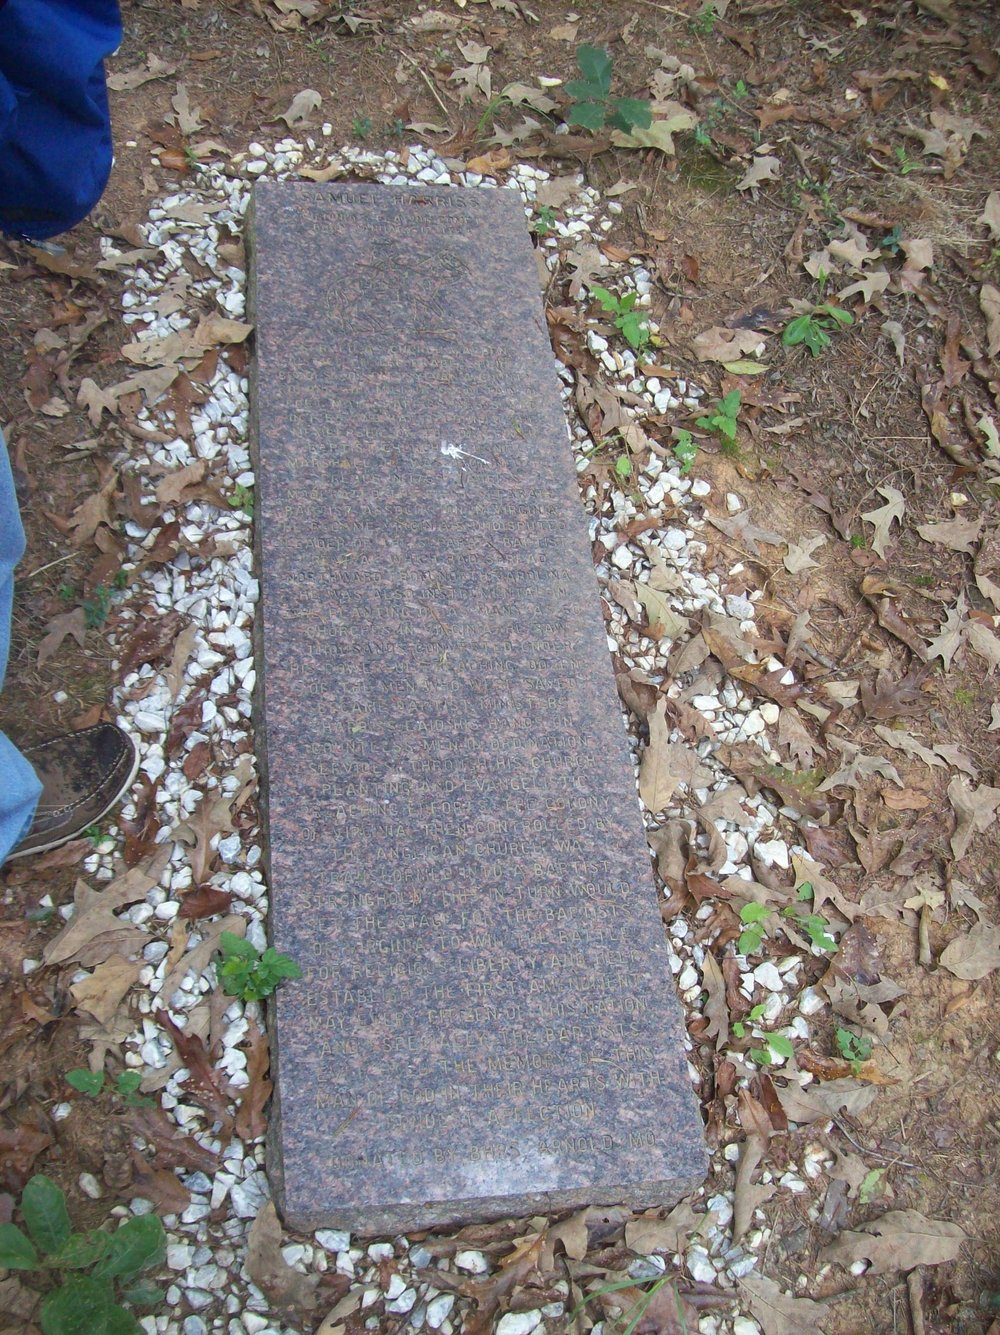 Grave of Samuel Harriss- Virginia's greatest evangelist